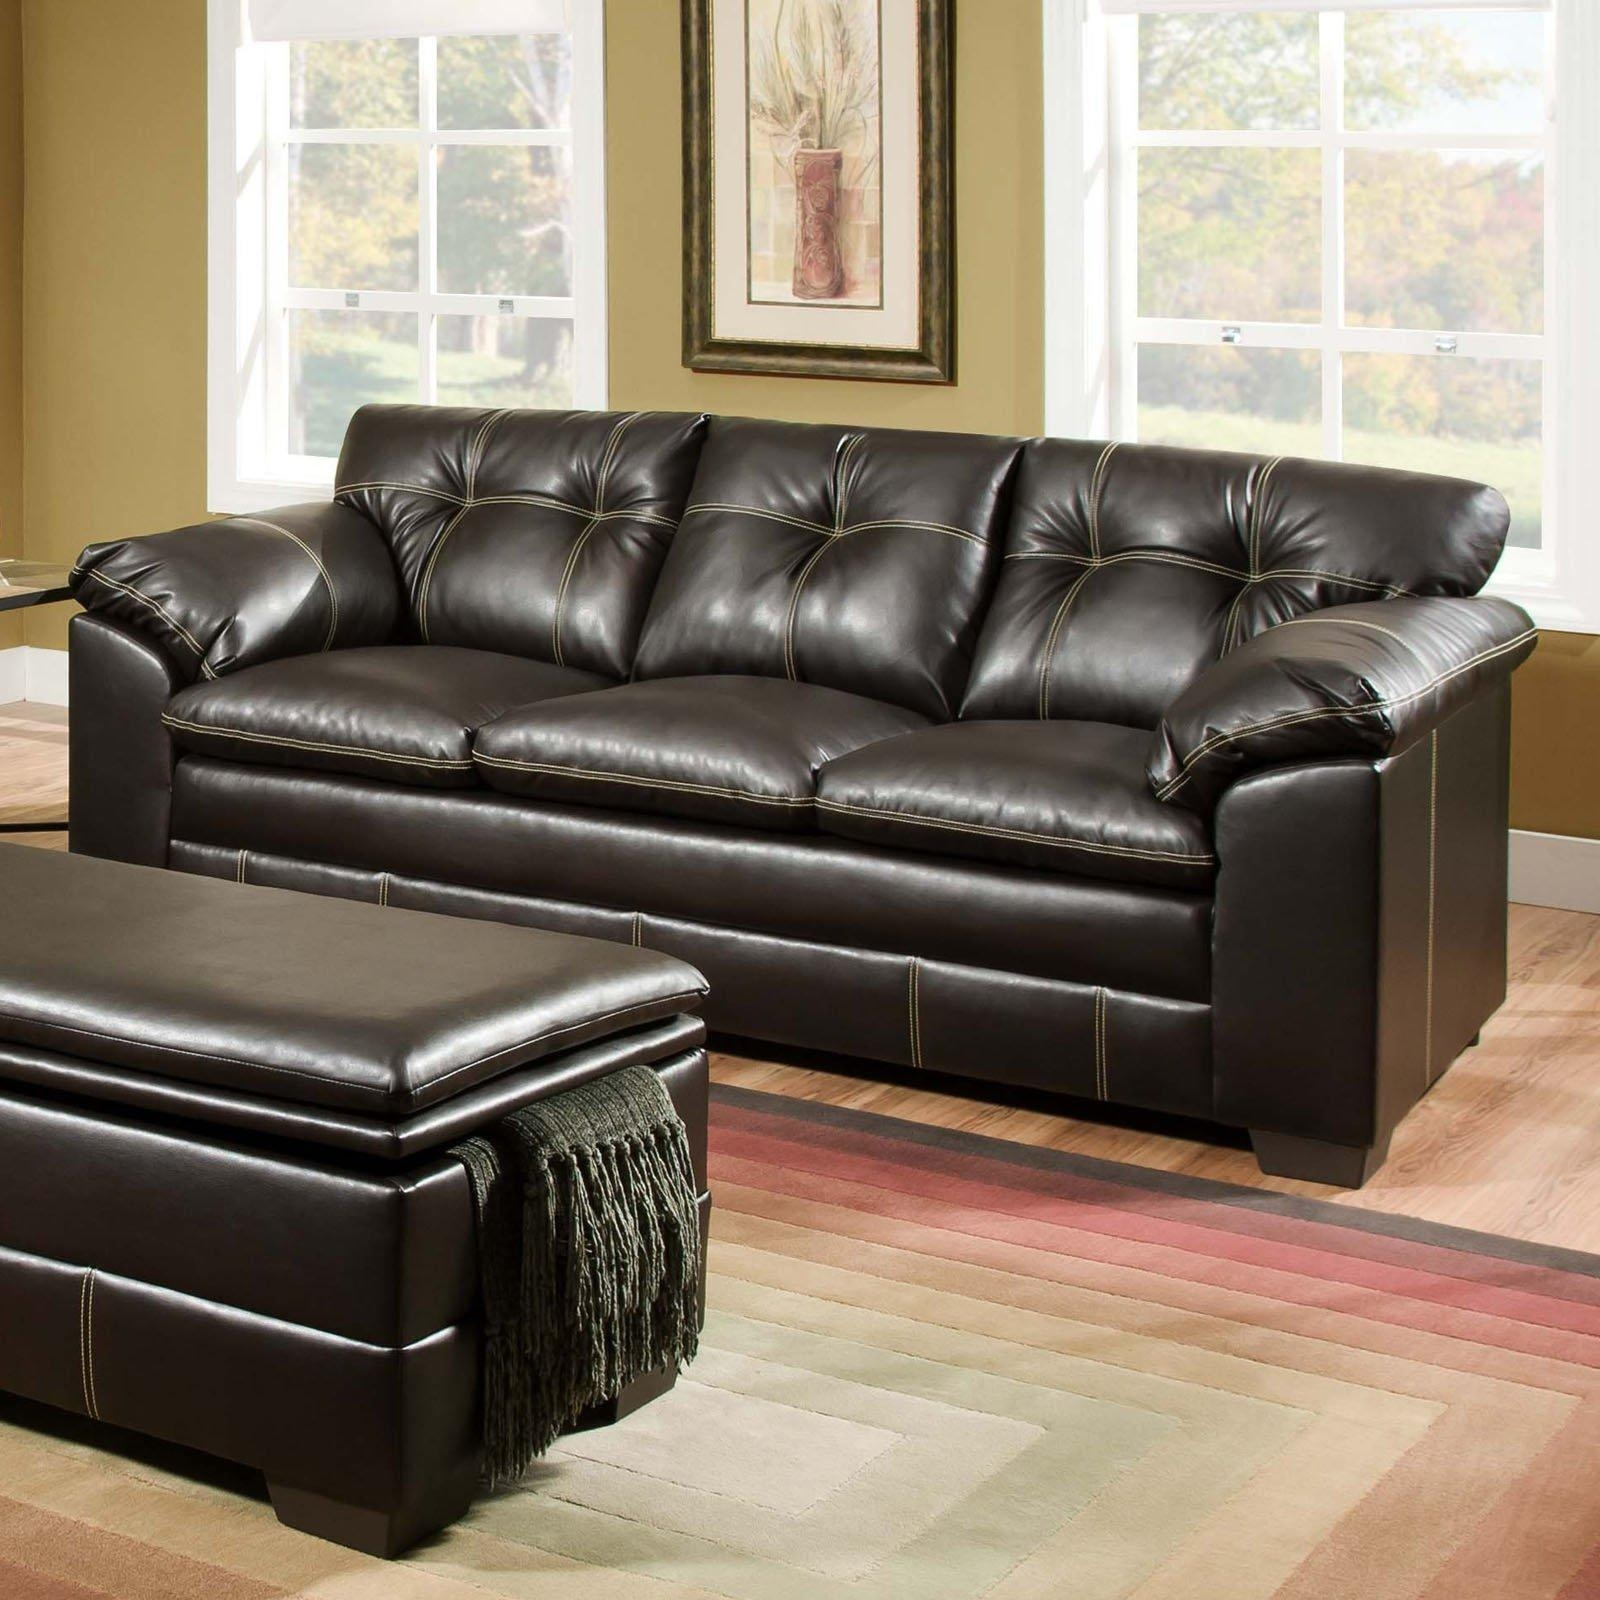 Simmons Upholstery Premier Bonded Leather Sofa | Hayneedle In Simmons Bonded Leather Sofas (View 5 of 20)